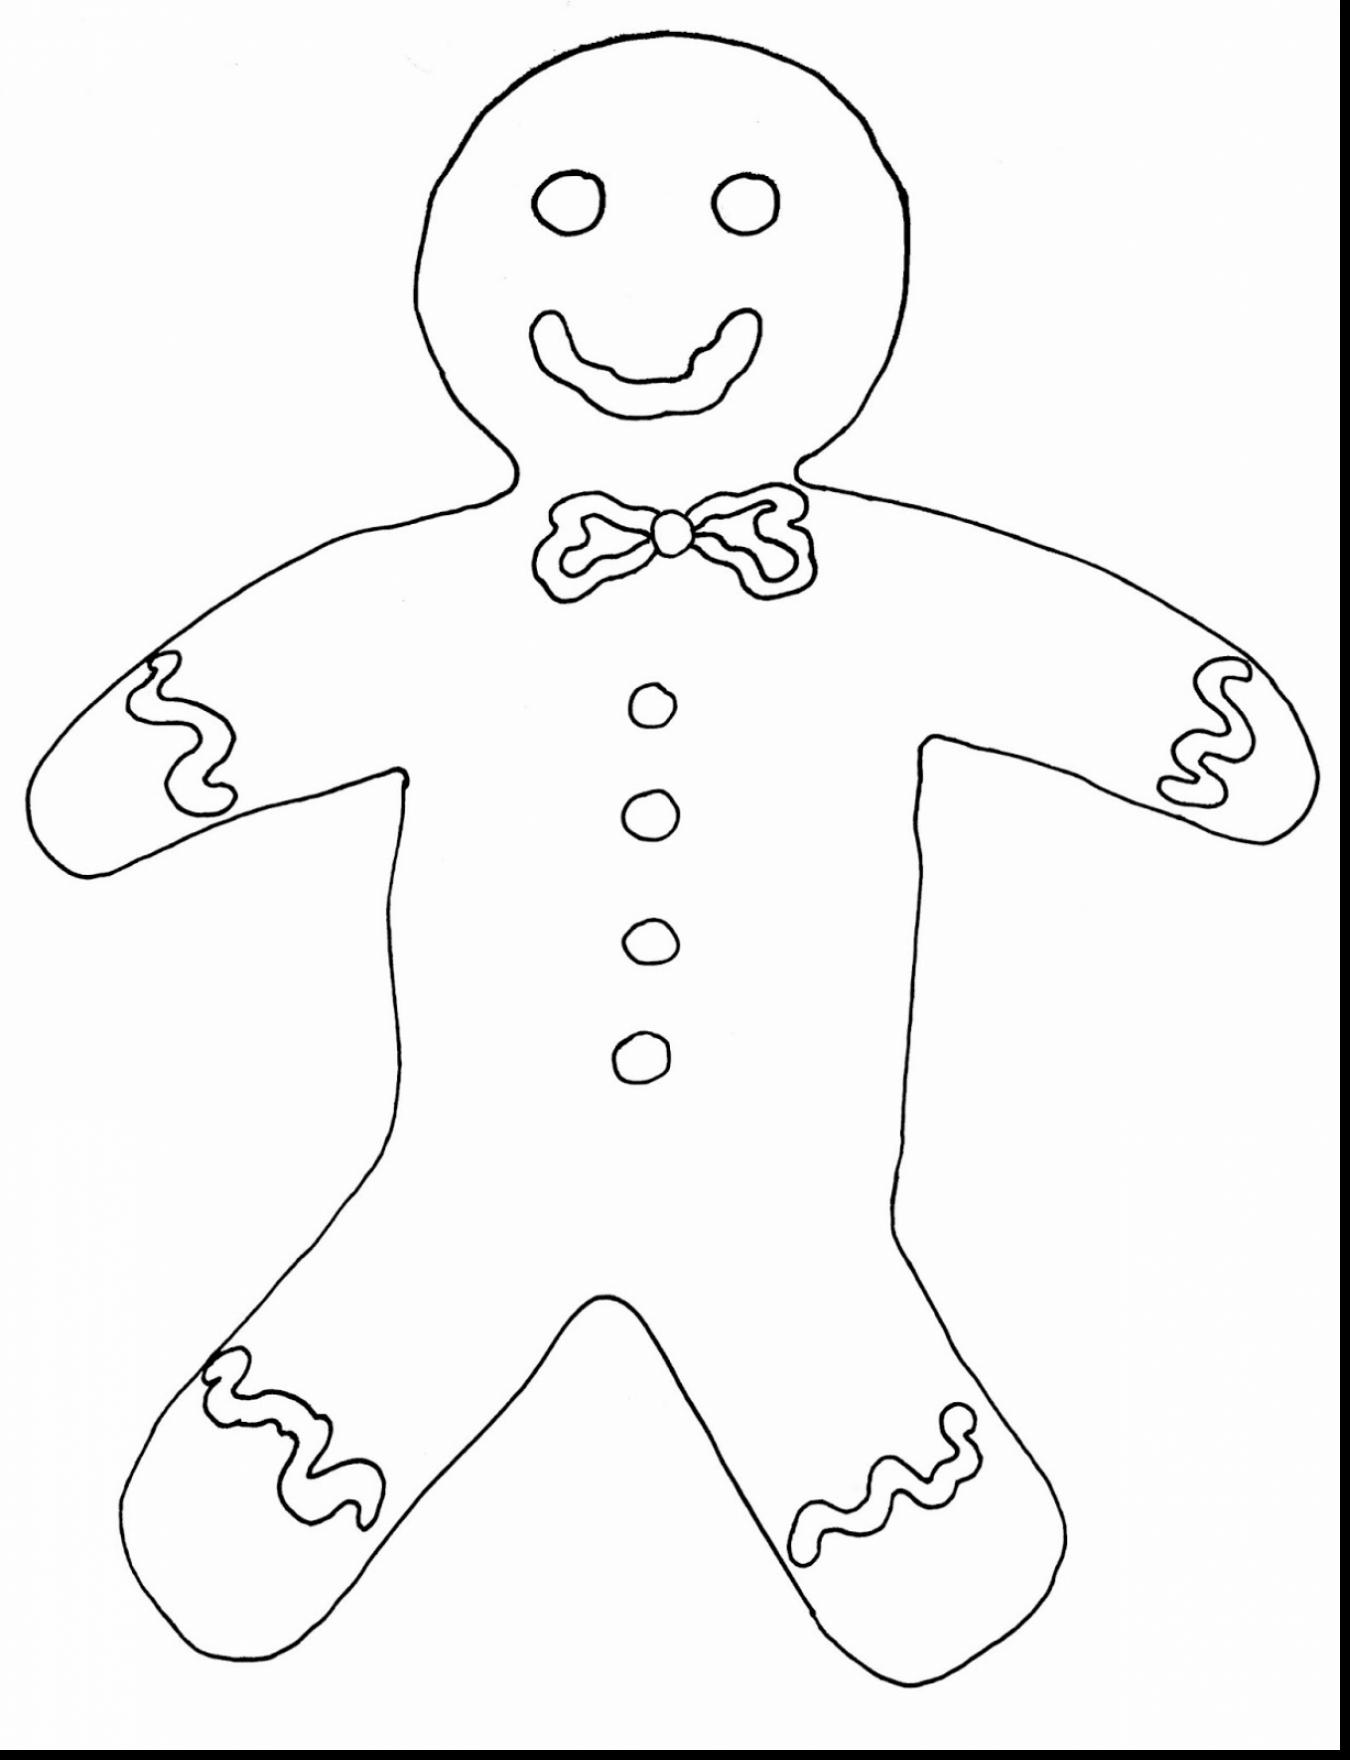 how to draw gingerbread man ginger bread man drawing at getdrawings free download how to draw man gingerbread